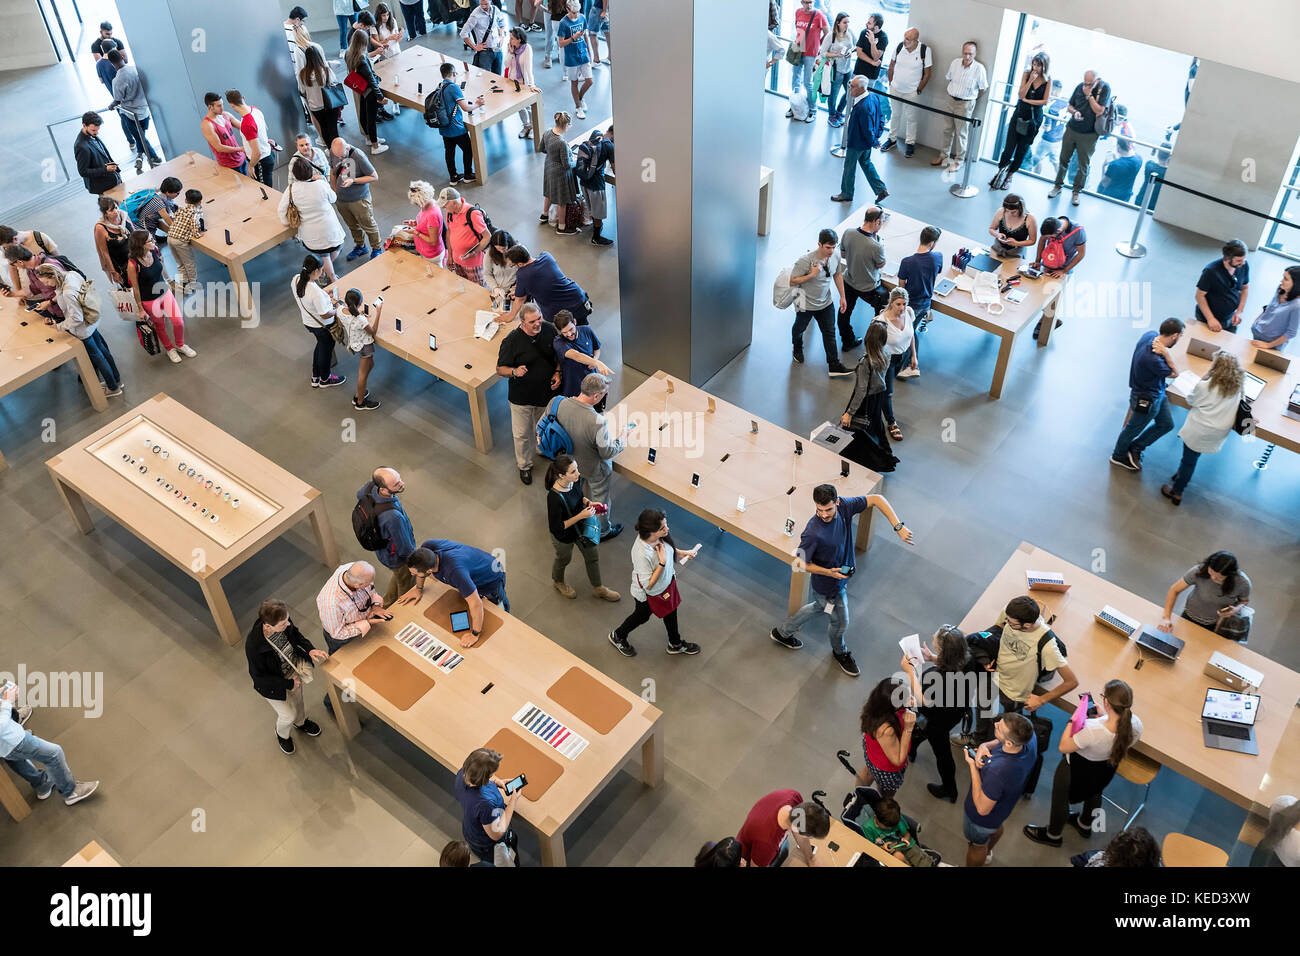 Interior  of busy Apple flagship store in Barcelona, Spain. - Stock Image